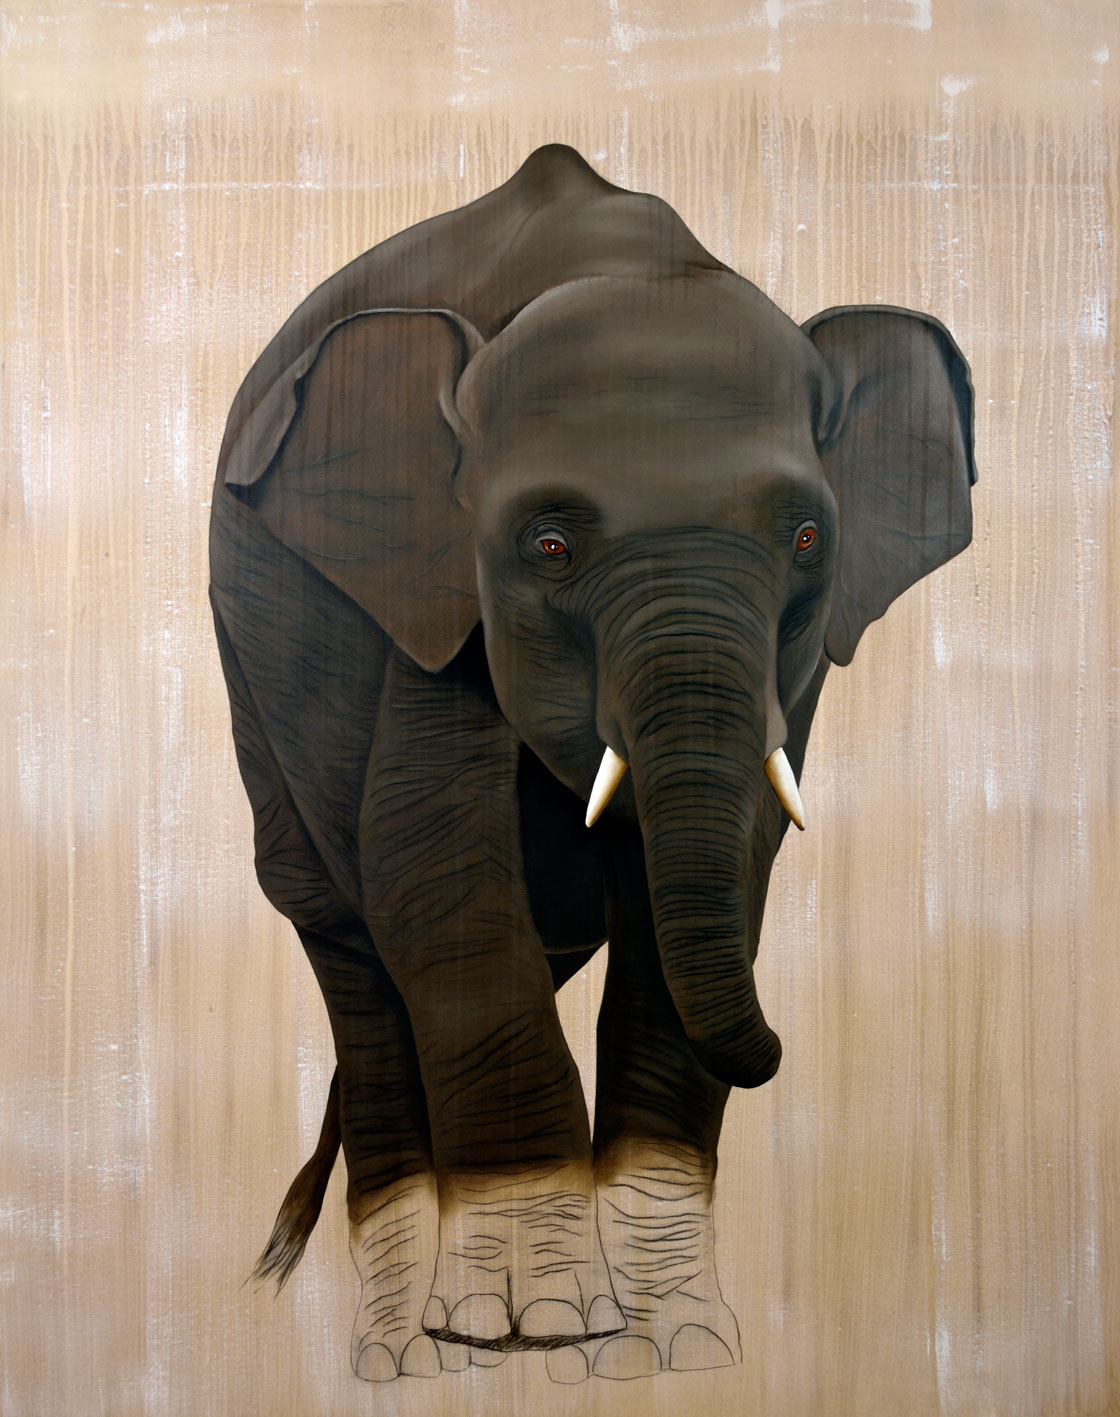 ELEPHAS MAXIMUS elephas%20maximus%20baby%20elephant%20asian%20delete%20threatened%20endangered%20extinction Thierry Bisch painter animals painting art decoration hotel design interior luxury nature biodiversity conservation